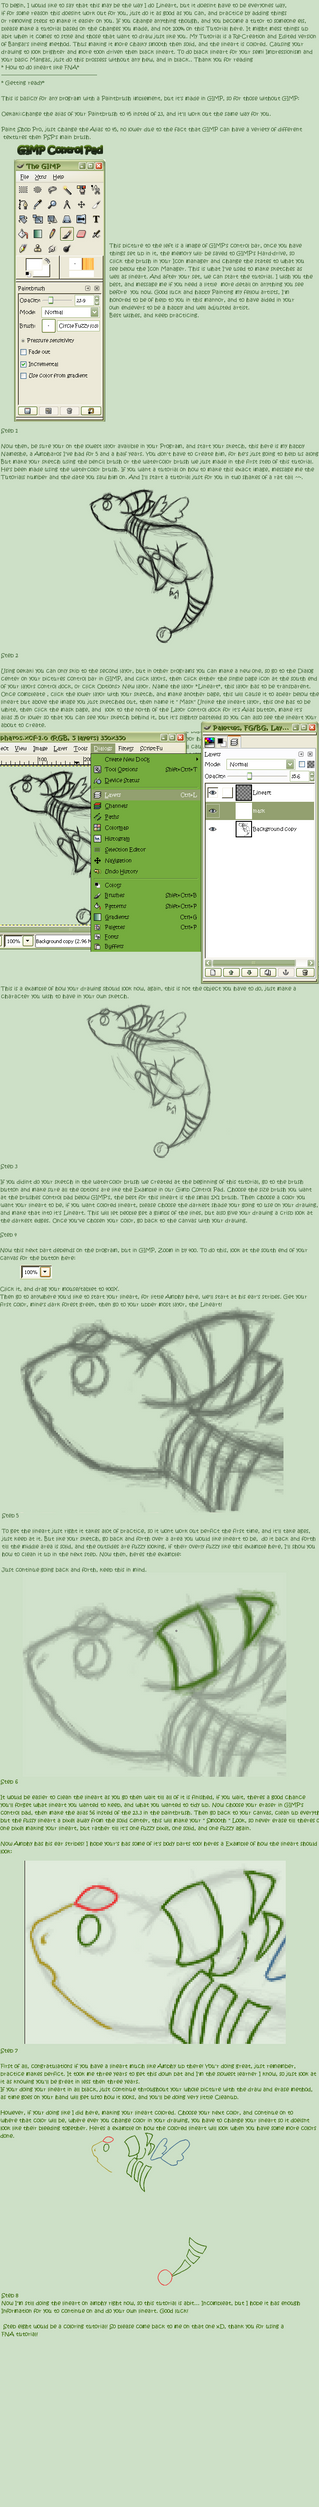 Fast lineart tutorial by harvestpicori on deviantart fast lineart tutorial by harvestpicori baditri Gallery